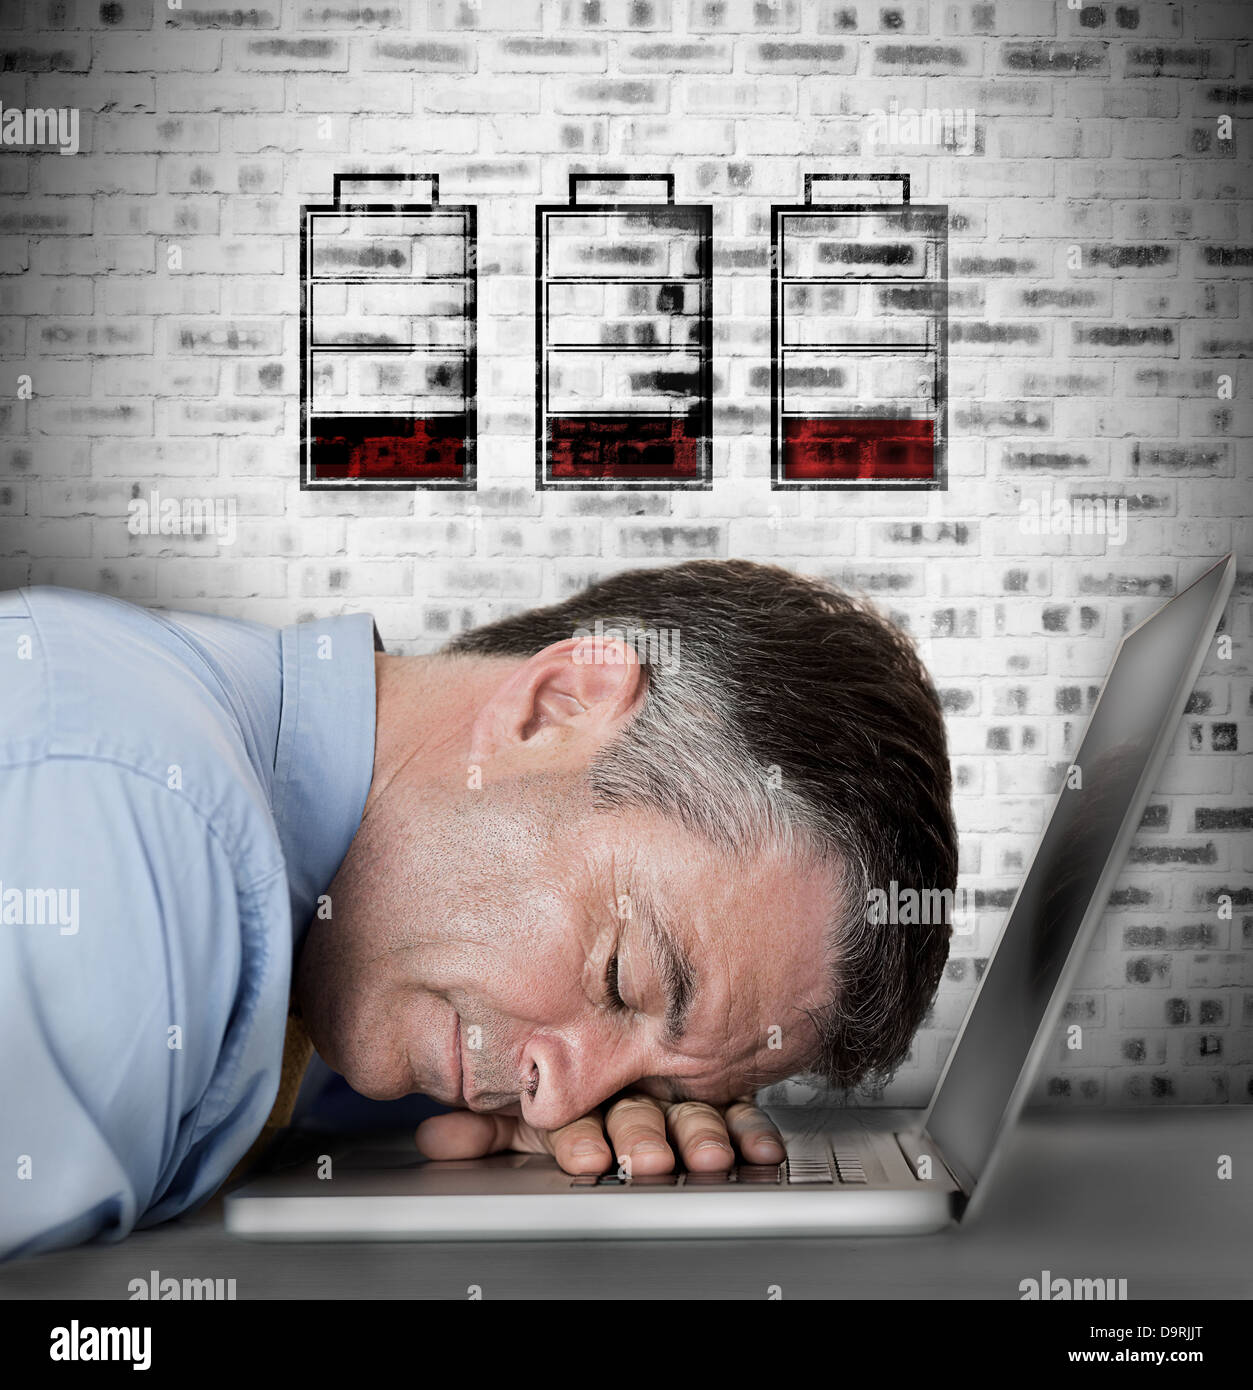 Businessman sleeping on his laptop with no battery symbols - Stock Image